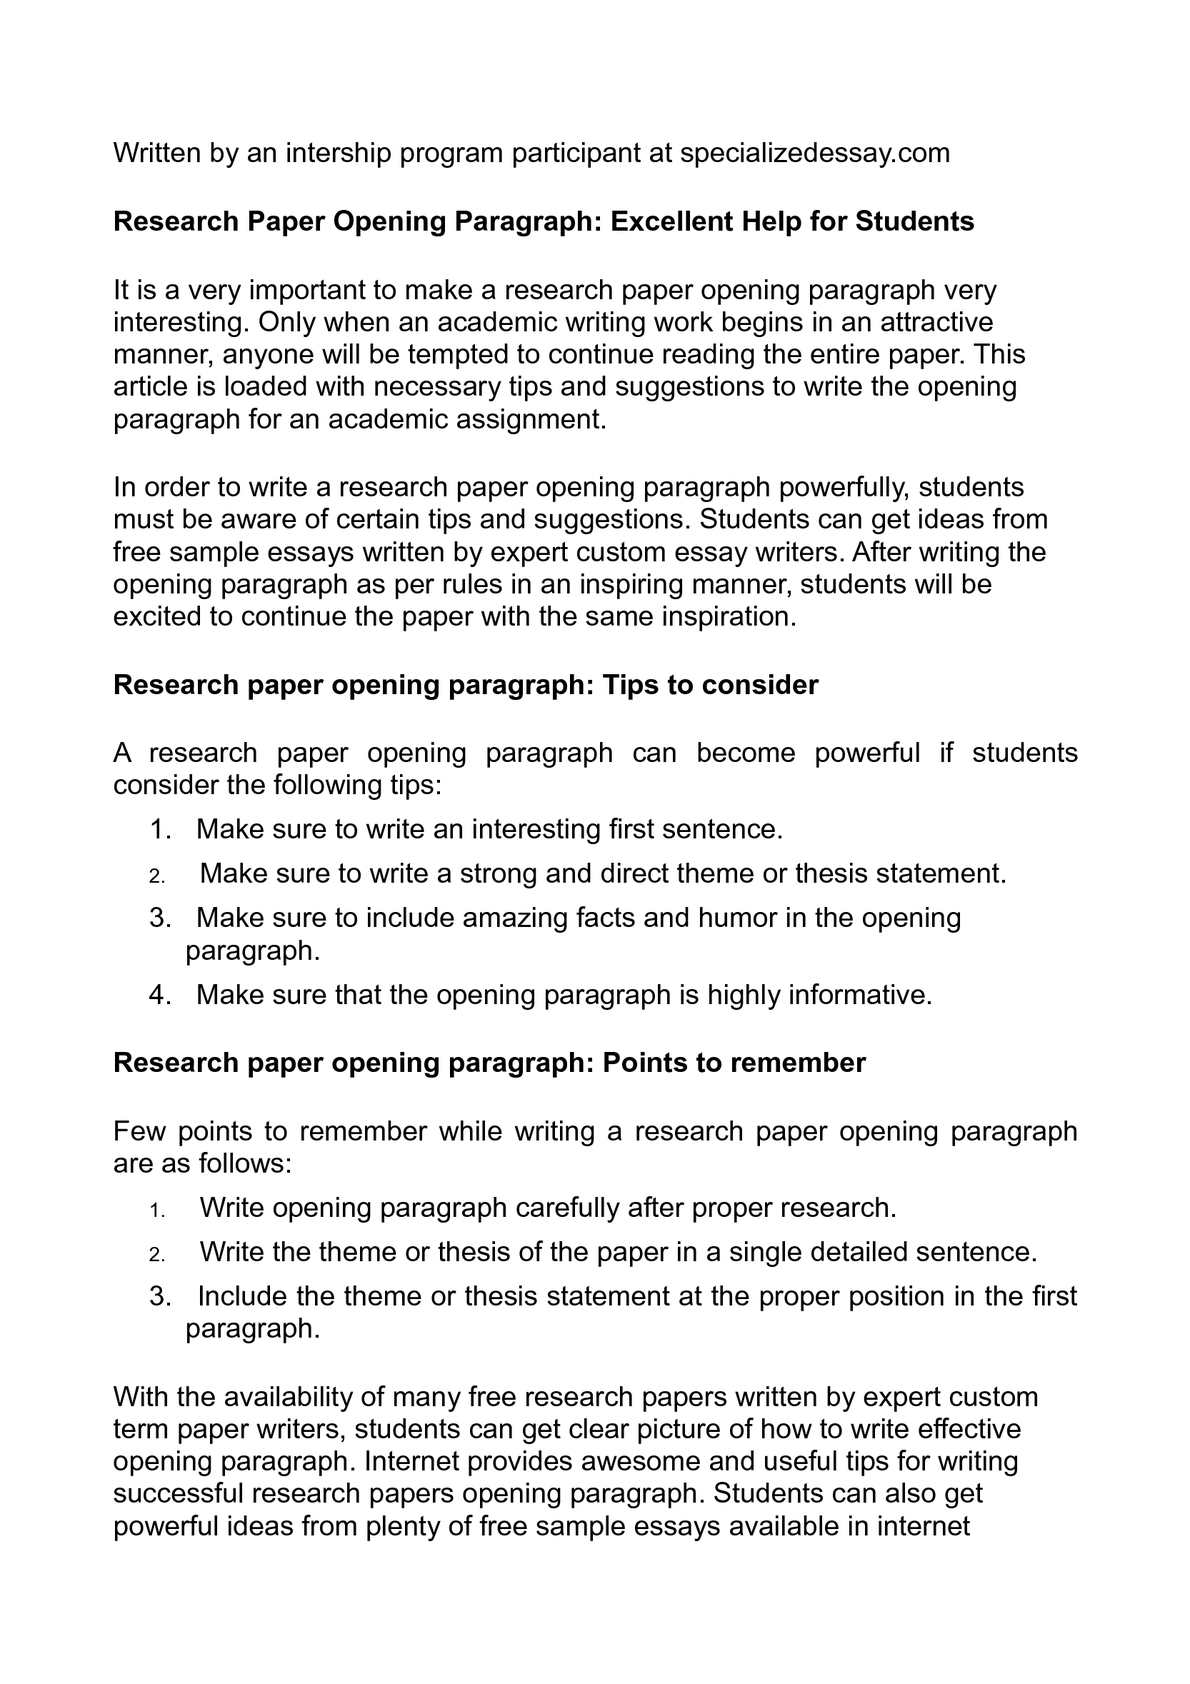 017 Cool Topics To Do Research Paper On Impressive A Interesting For Medical Of In Computer Science Economic Full